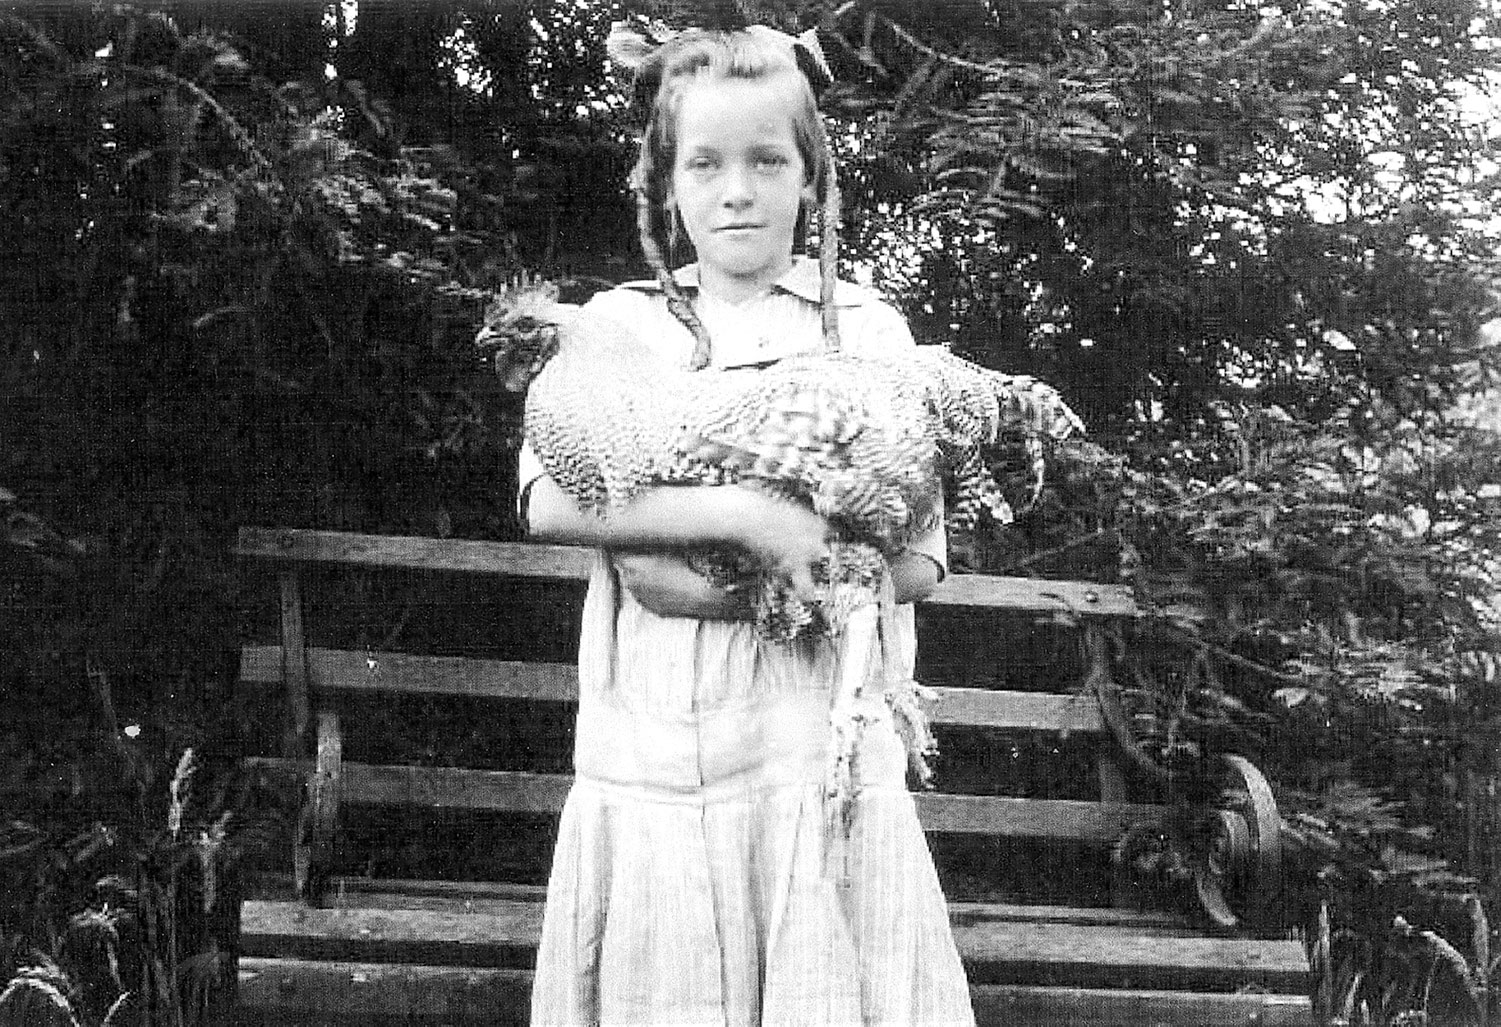 Bench Portrait: Evelyn Fairbanks with Chicken